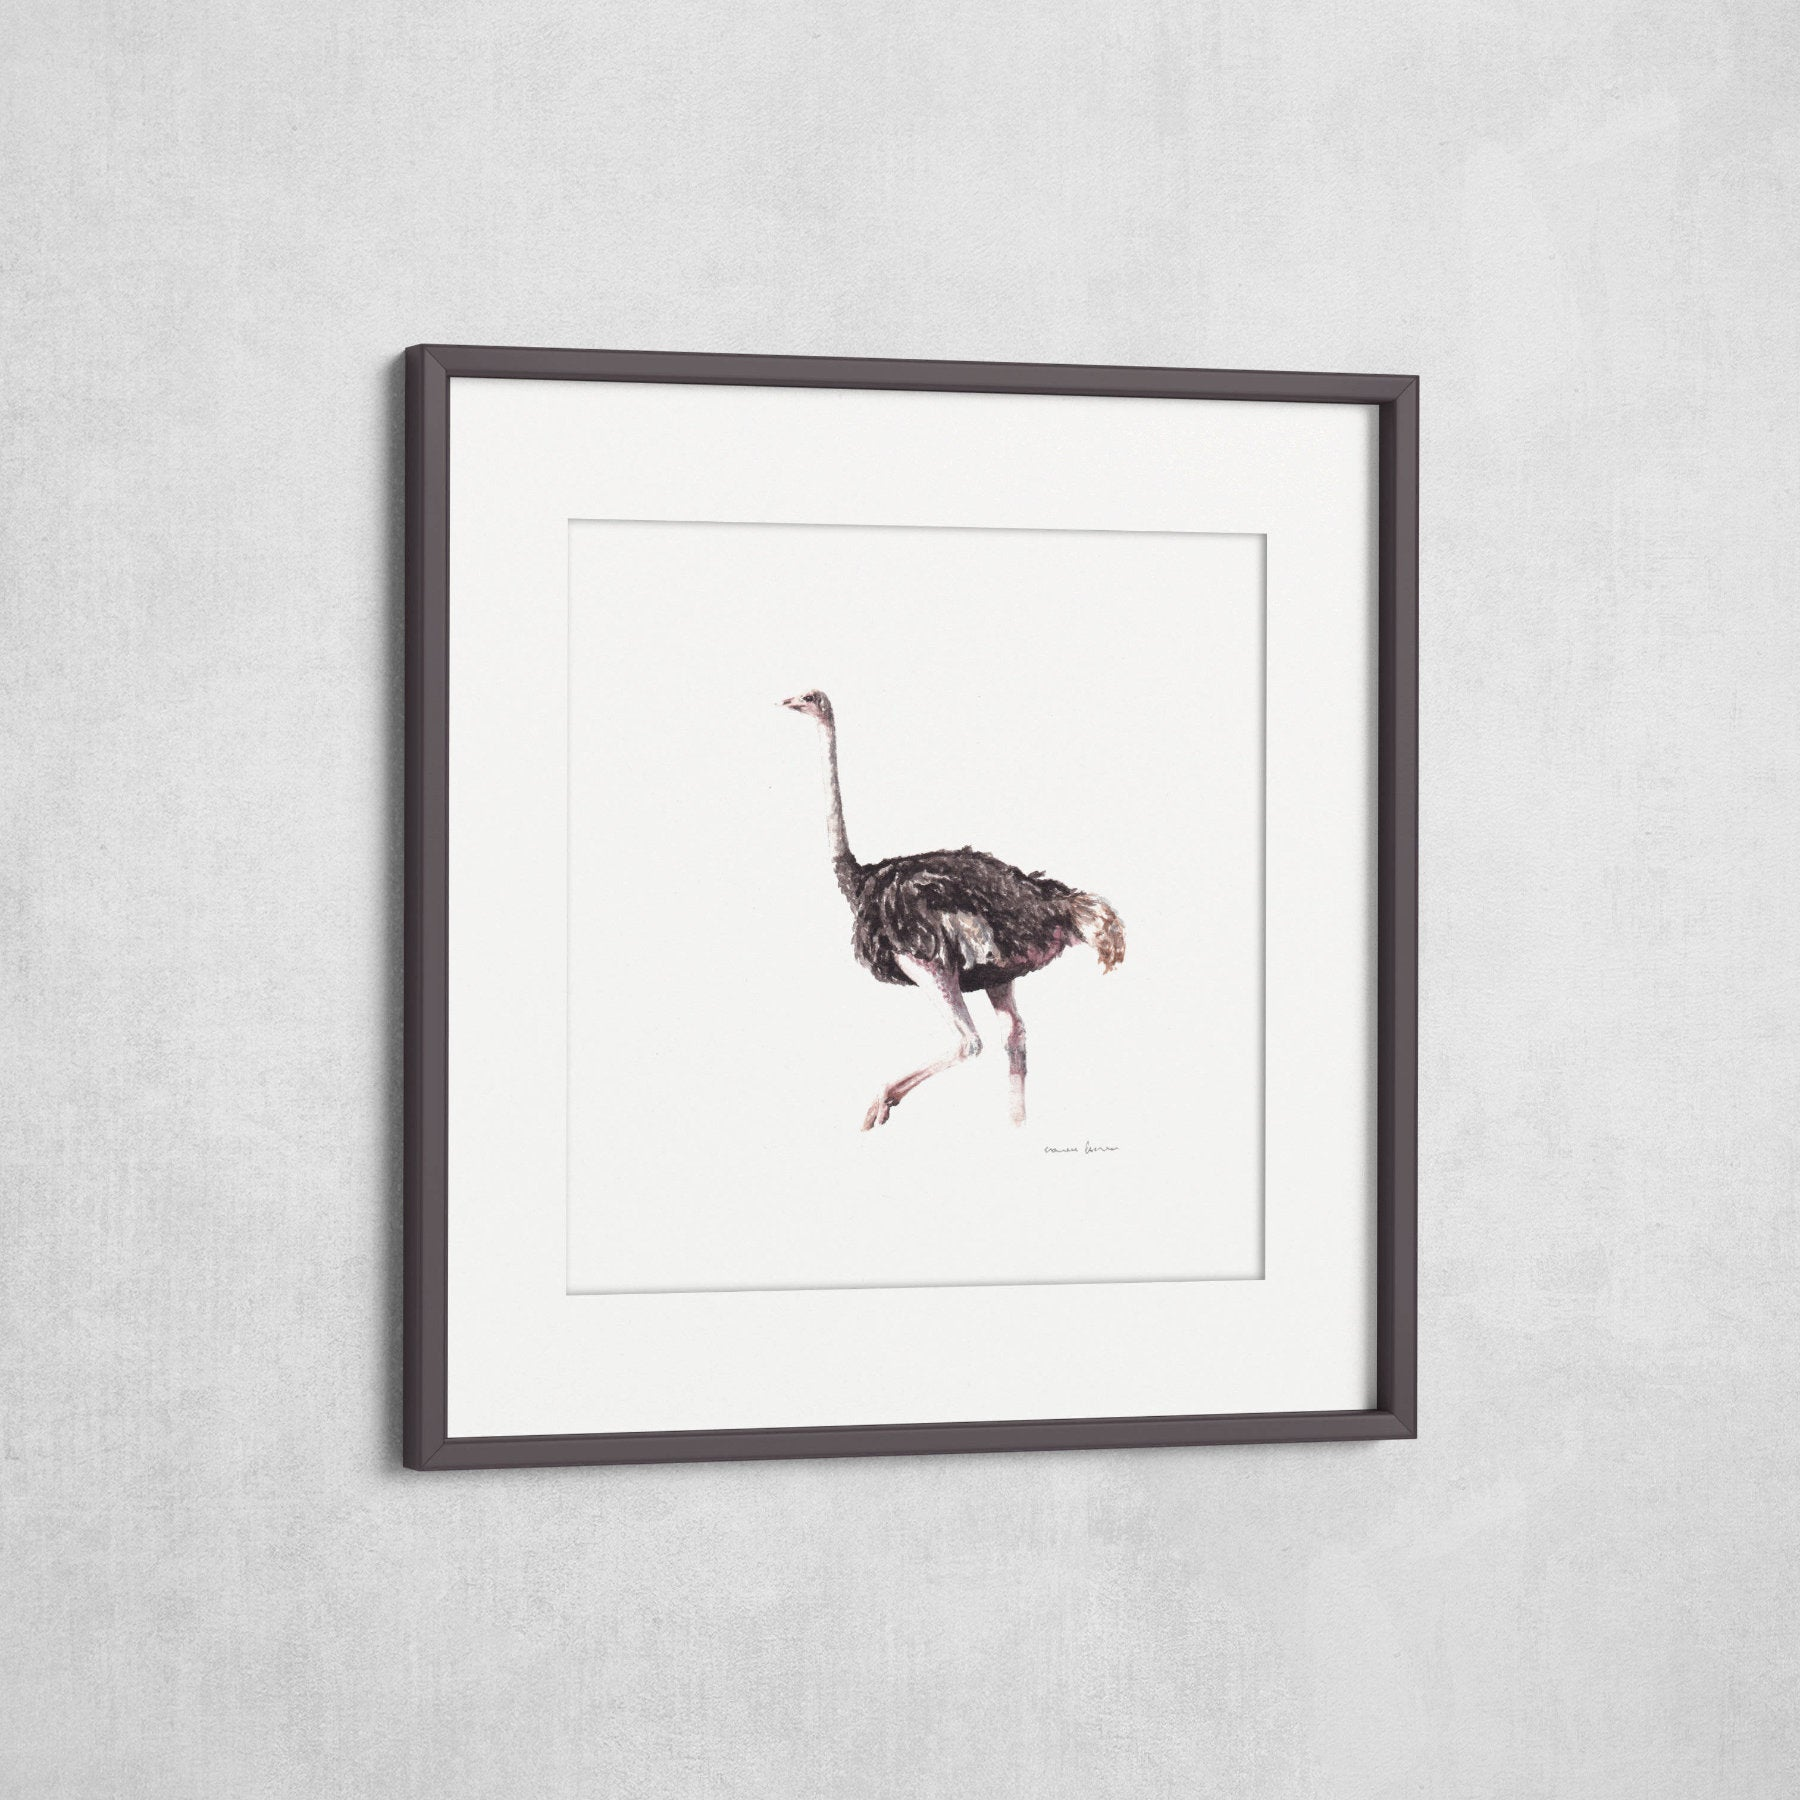 Running - Fine-Art Print (Square) - Carina Kramer - Fine Art, Fine Art Print, Wildlife Art/ Animal Painting